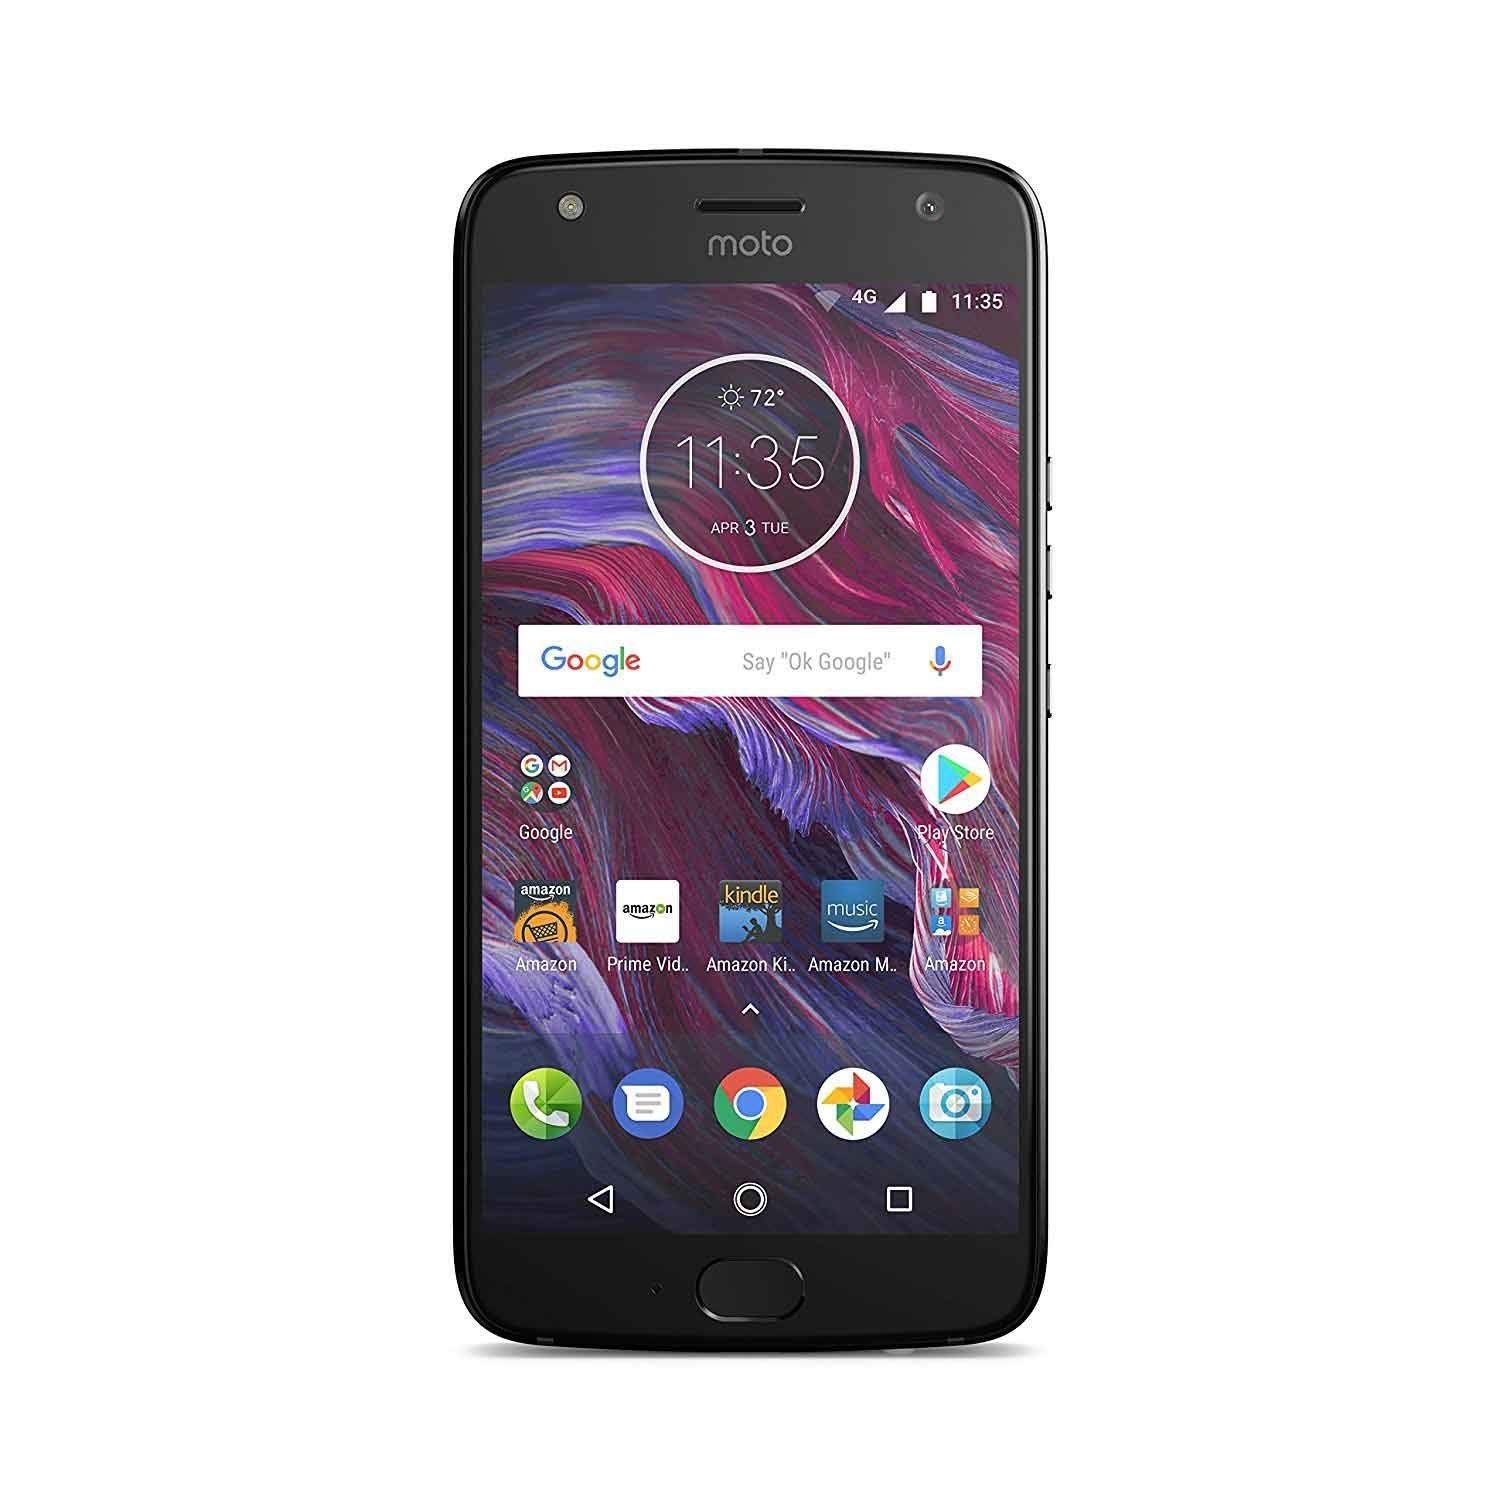 Moto X (4th Generation) - with Amazon Alexa hands-free – 32 GB - Unlocked – Super Black - Prime Exclusive by Motorola (Image #1)